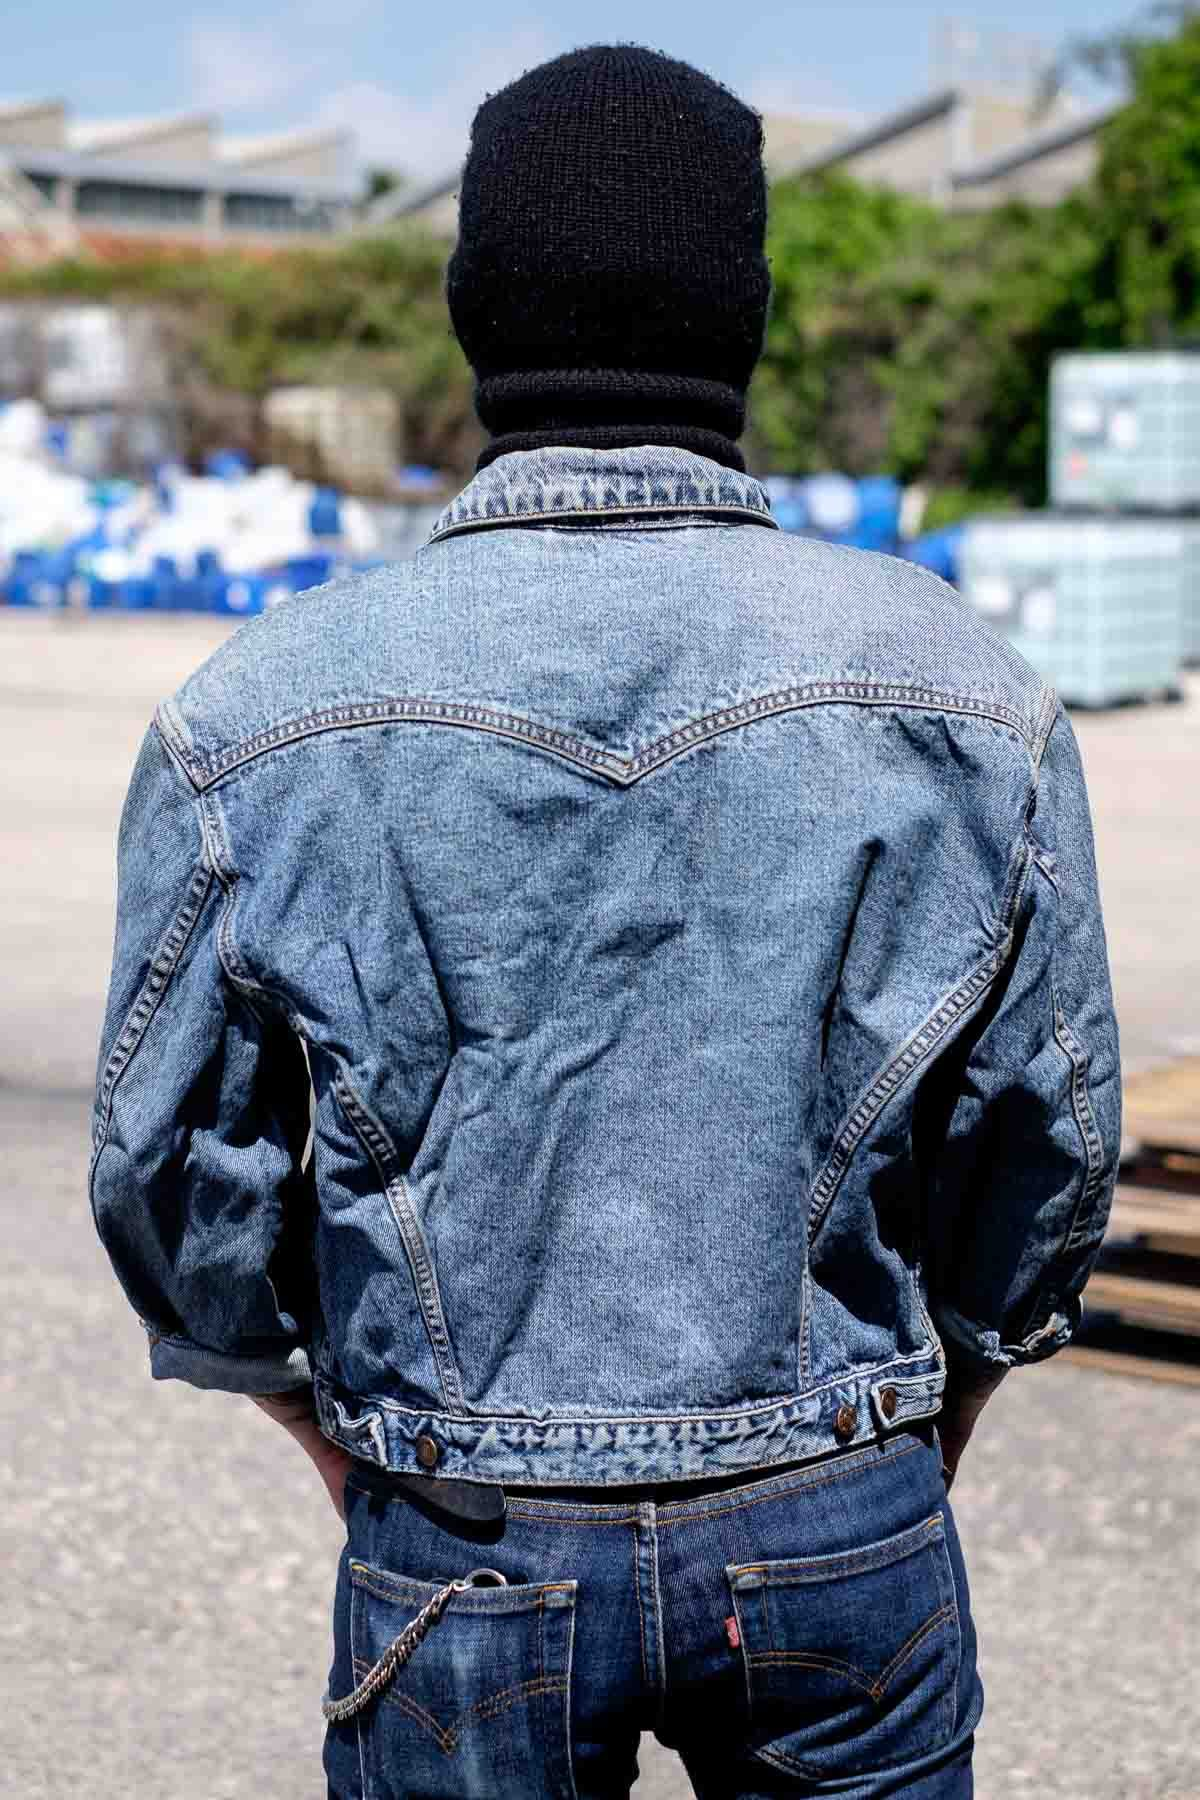 Giacca Jeans Levi's Vintage 80s